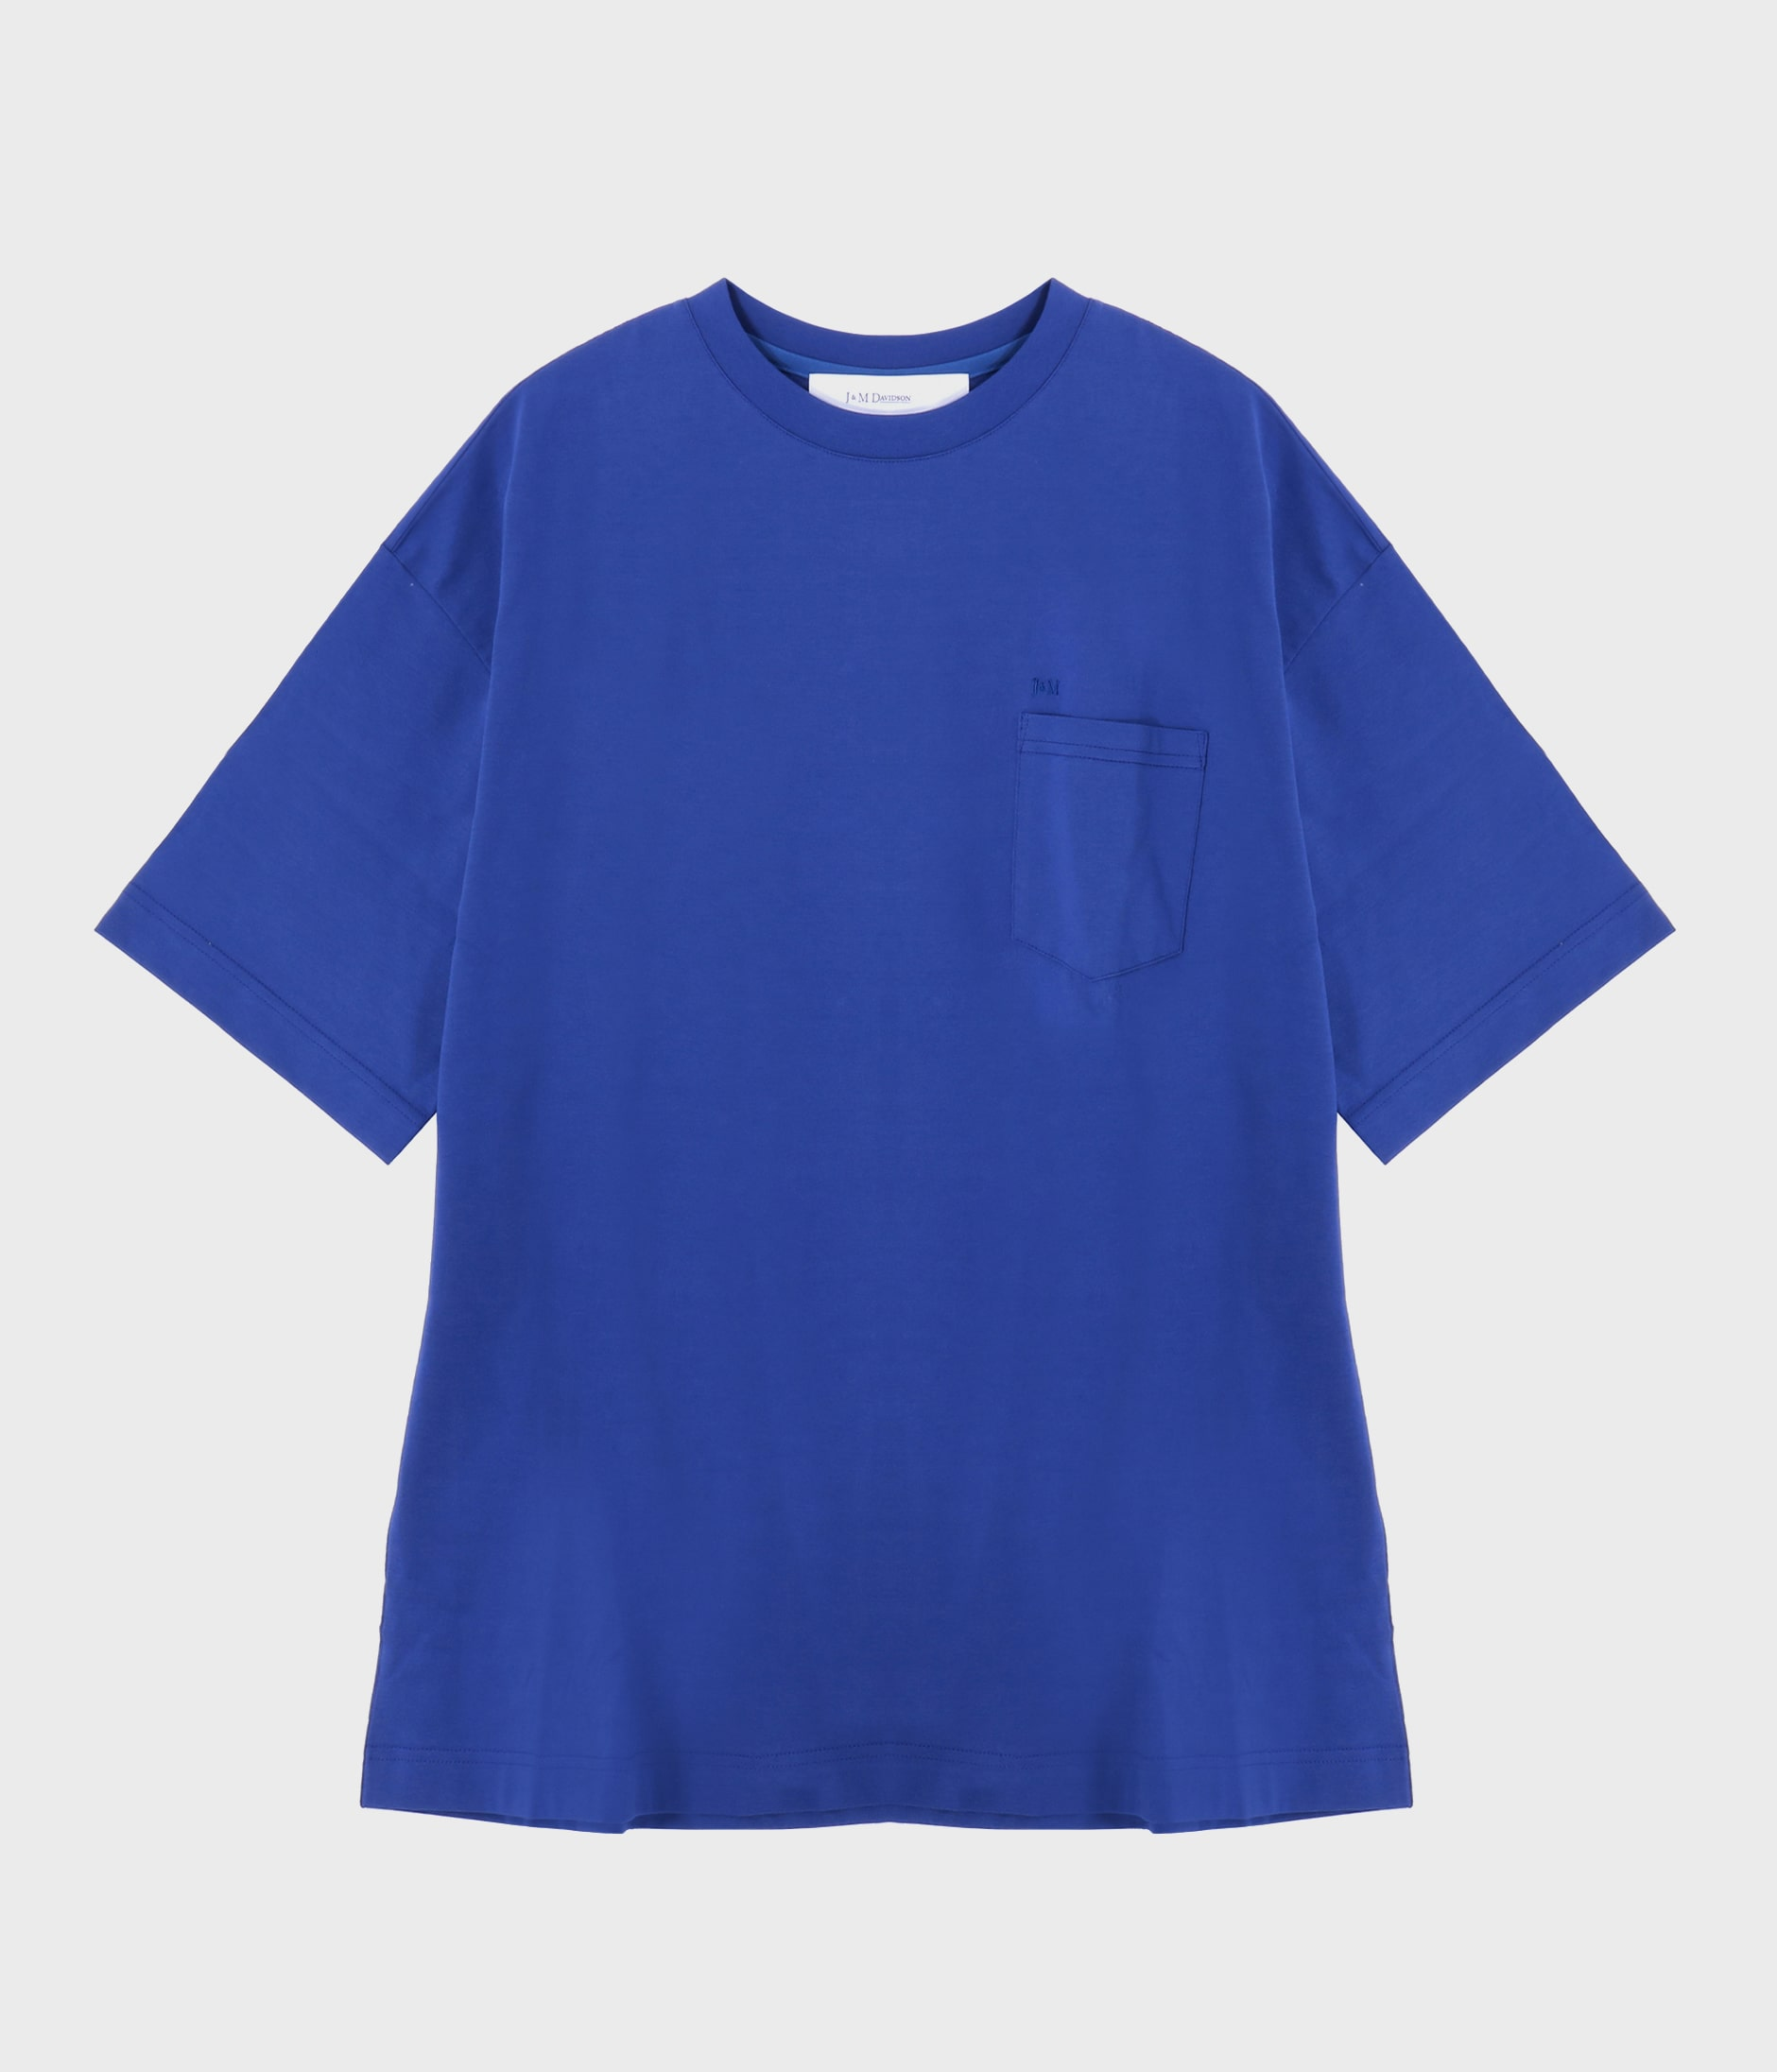 OVERSIZED T-SHIRT 詳細画像 ELECTRIC BLUE 1